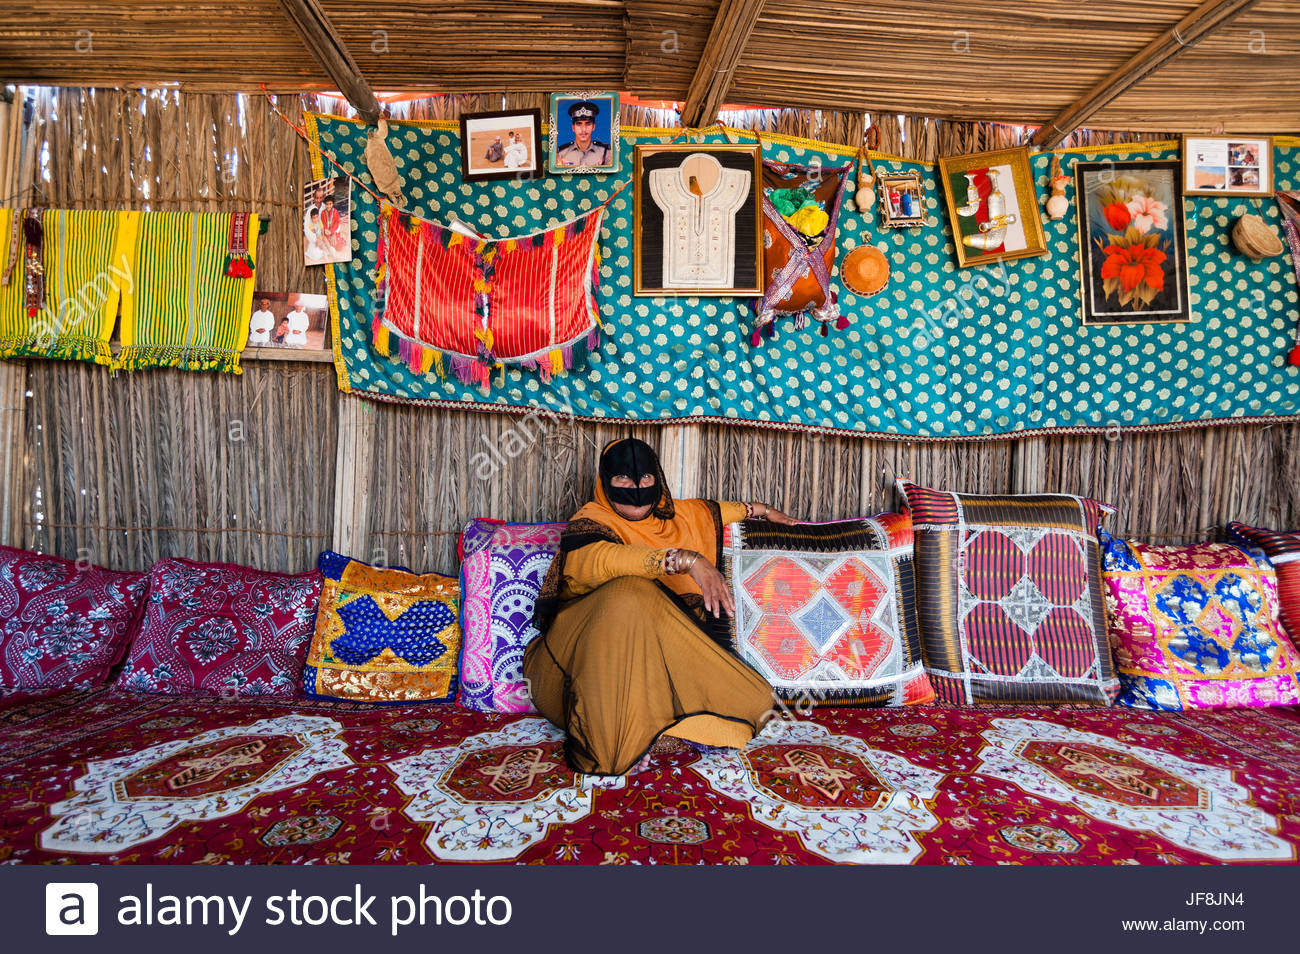 Portrait of a Bedouin woman relaxing in her home. - Stock Image